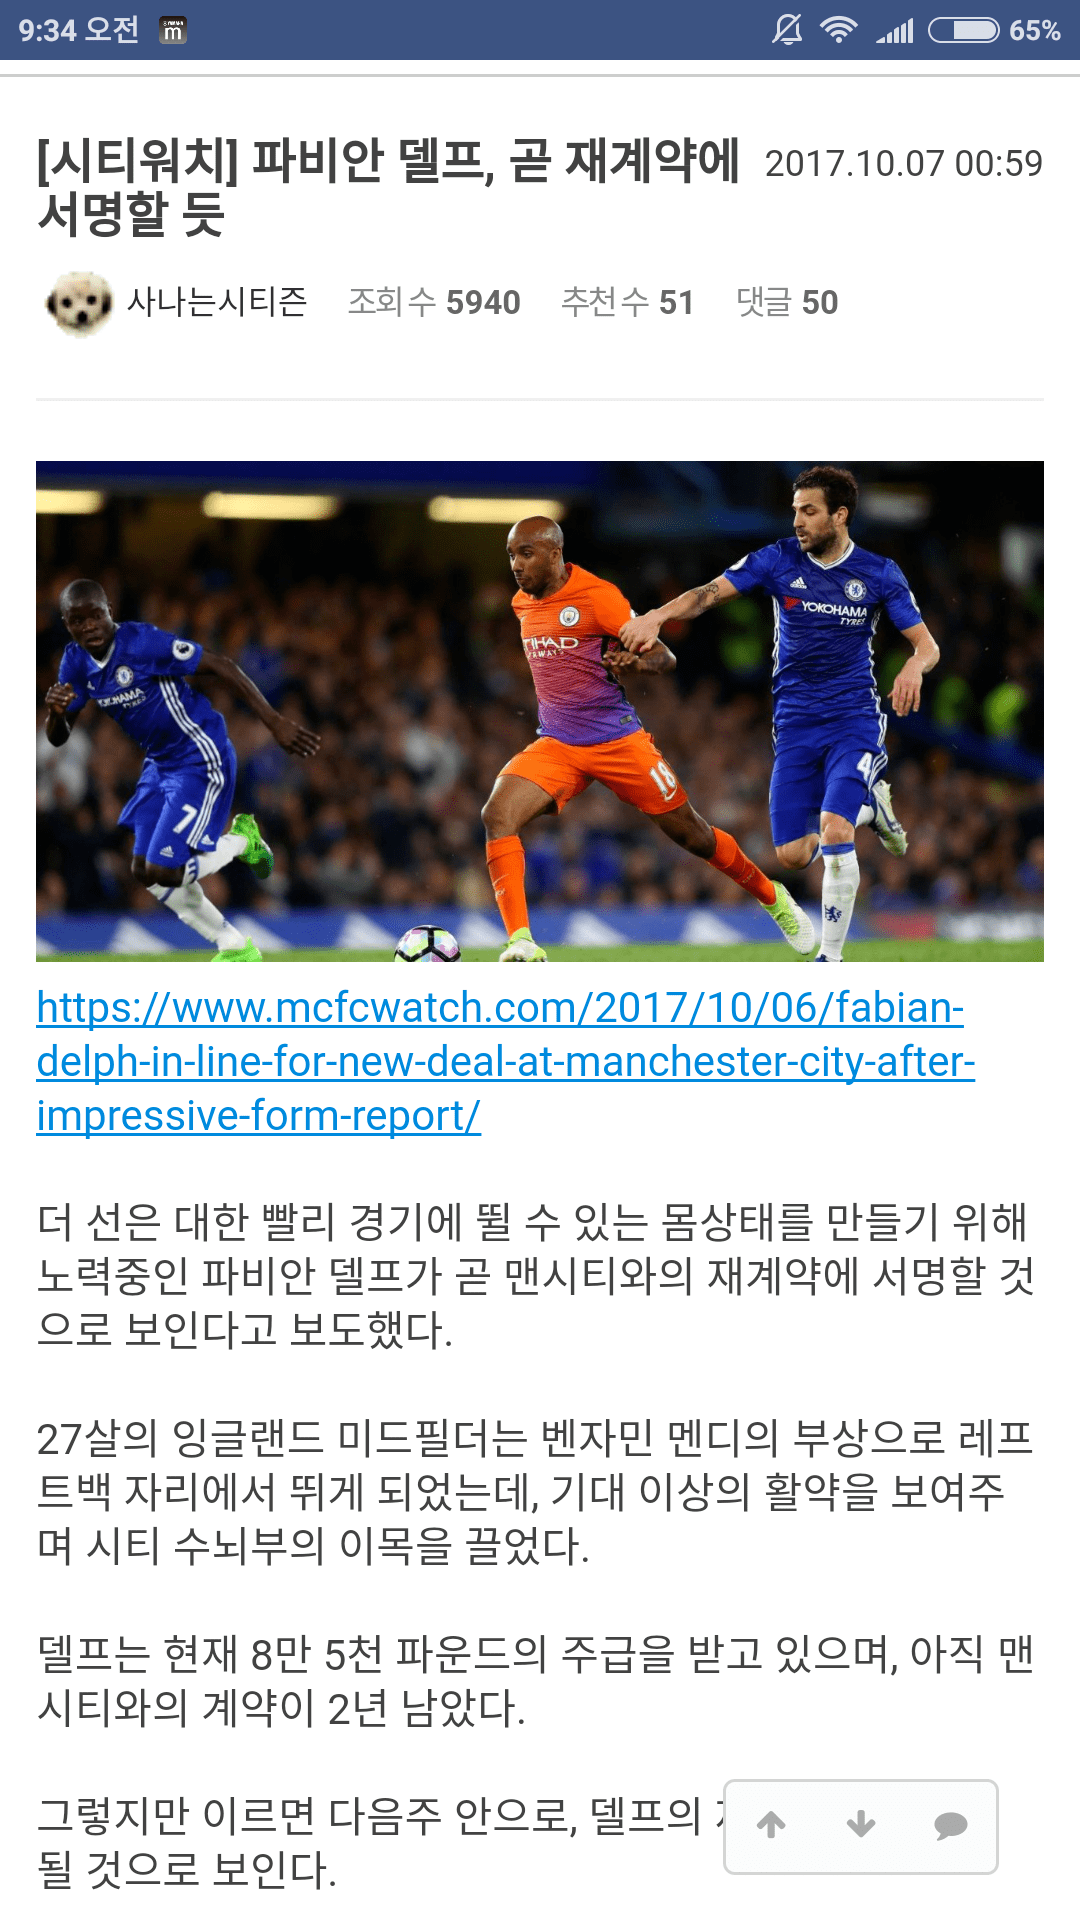 Screenshot_2017-10-07-09-34-15-364_com.android.chrome.png 미래를 본 사나이.jpg